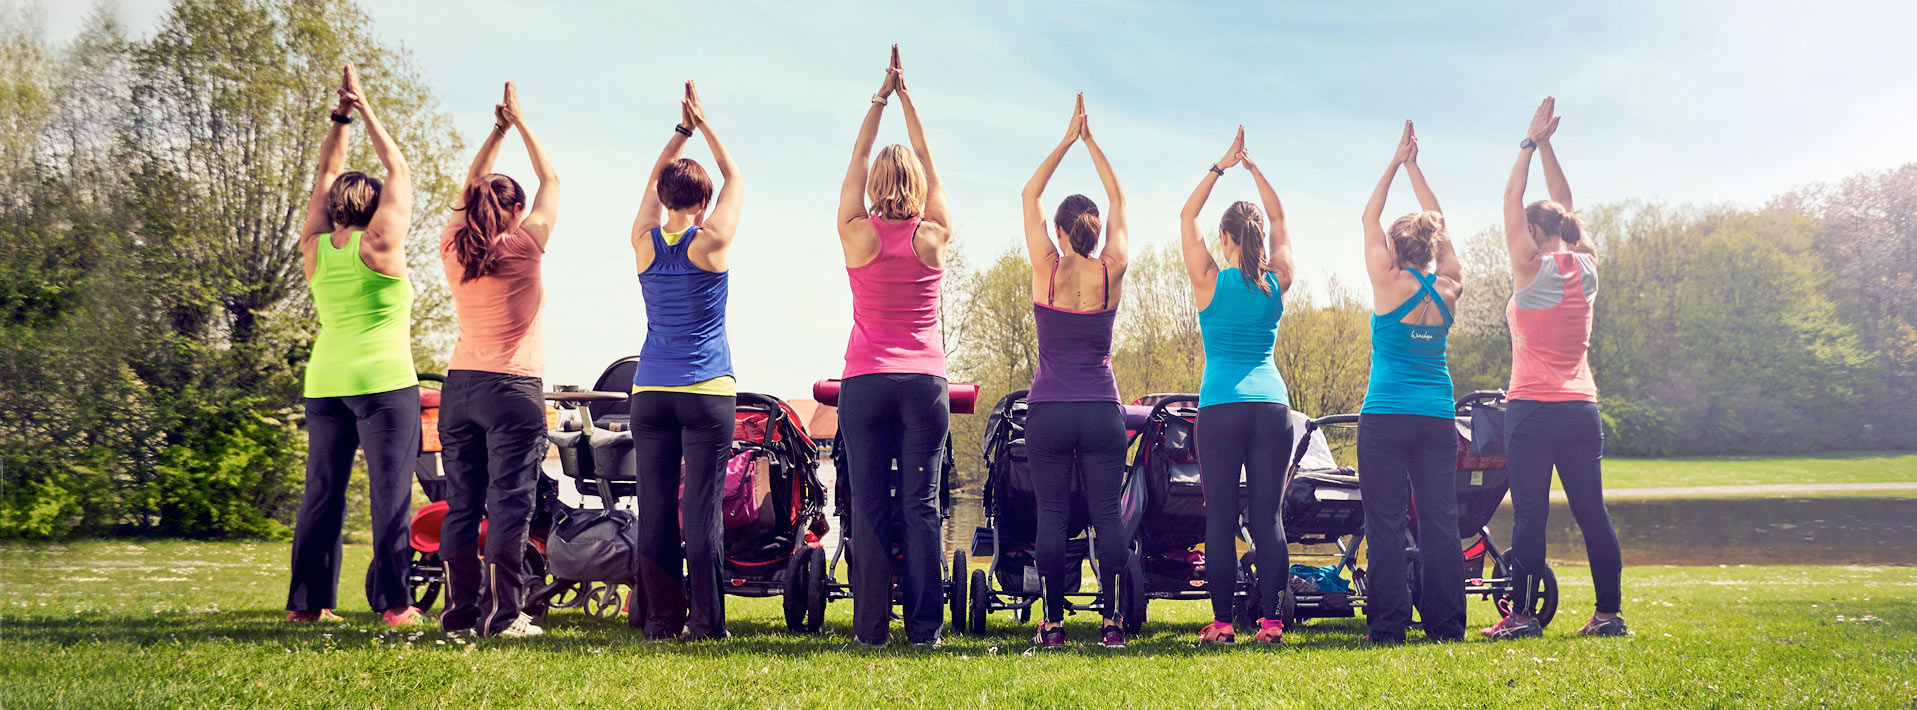 buggy brigade, post natal fitness, mum and baby exercise, personal training, st albans, verulamium park, outside